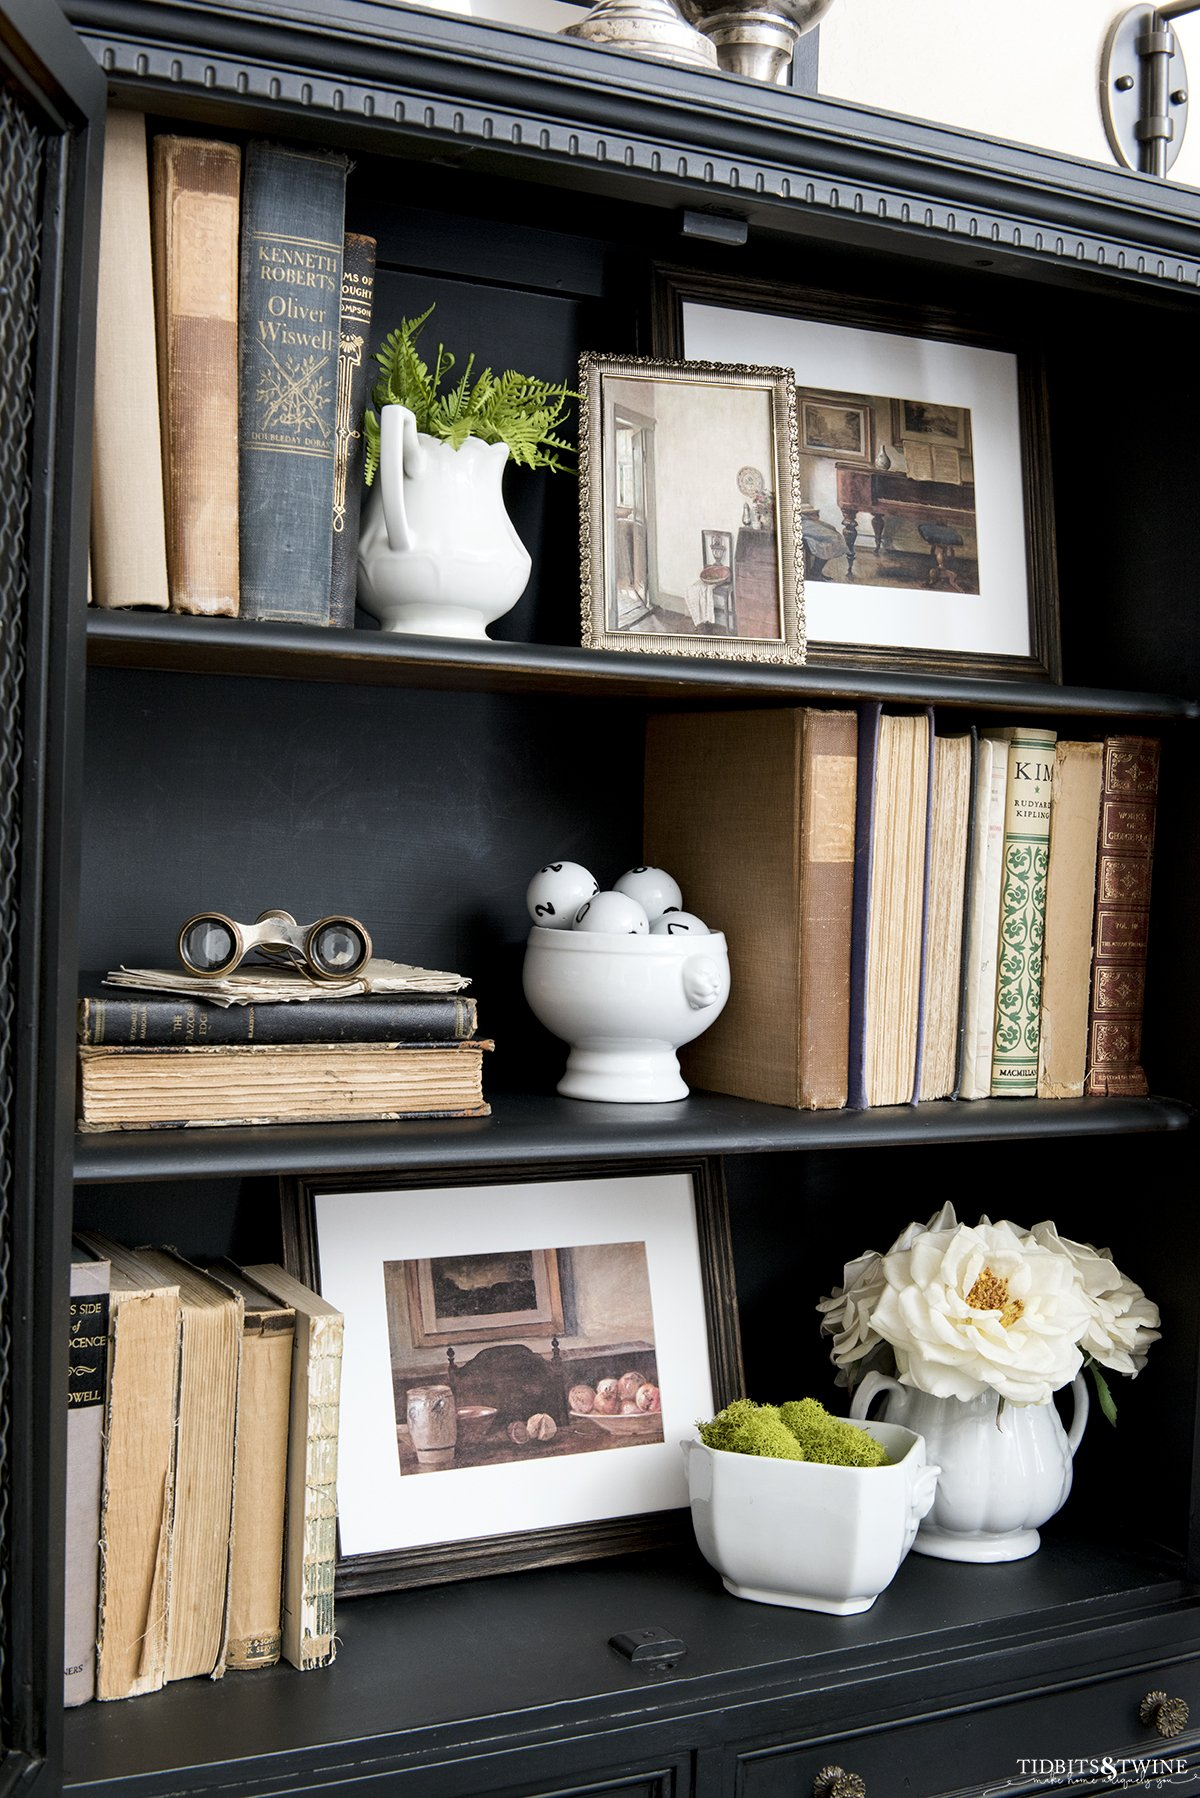 Black bookshelf styled with antique books and framed artwork and a vase of white roses